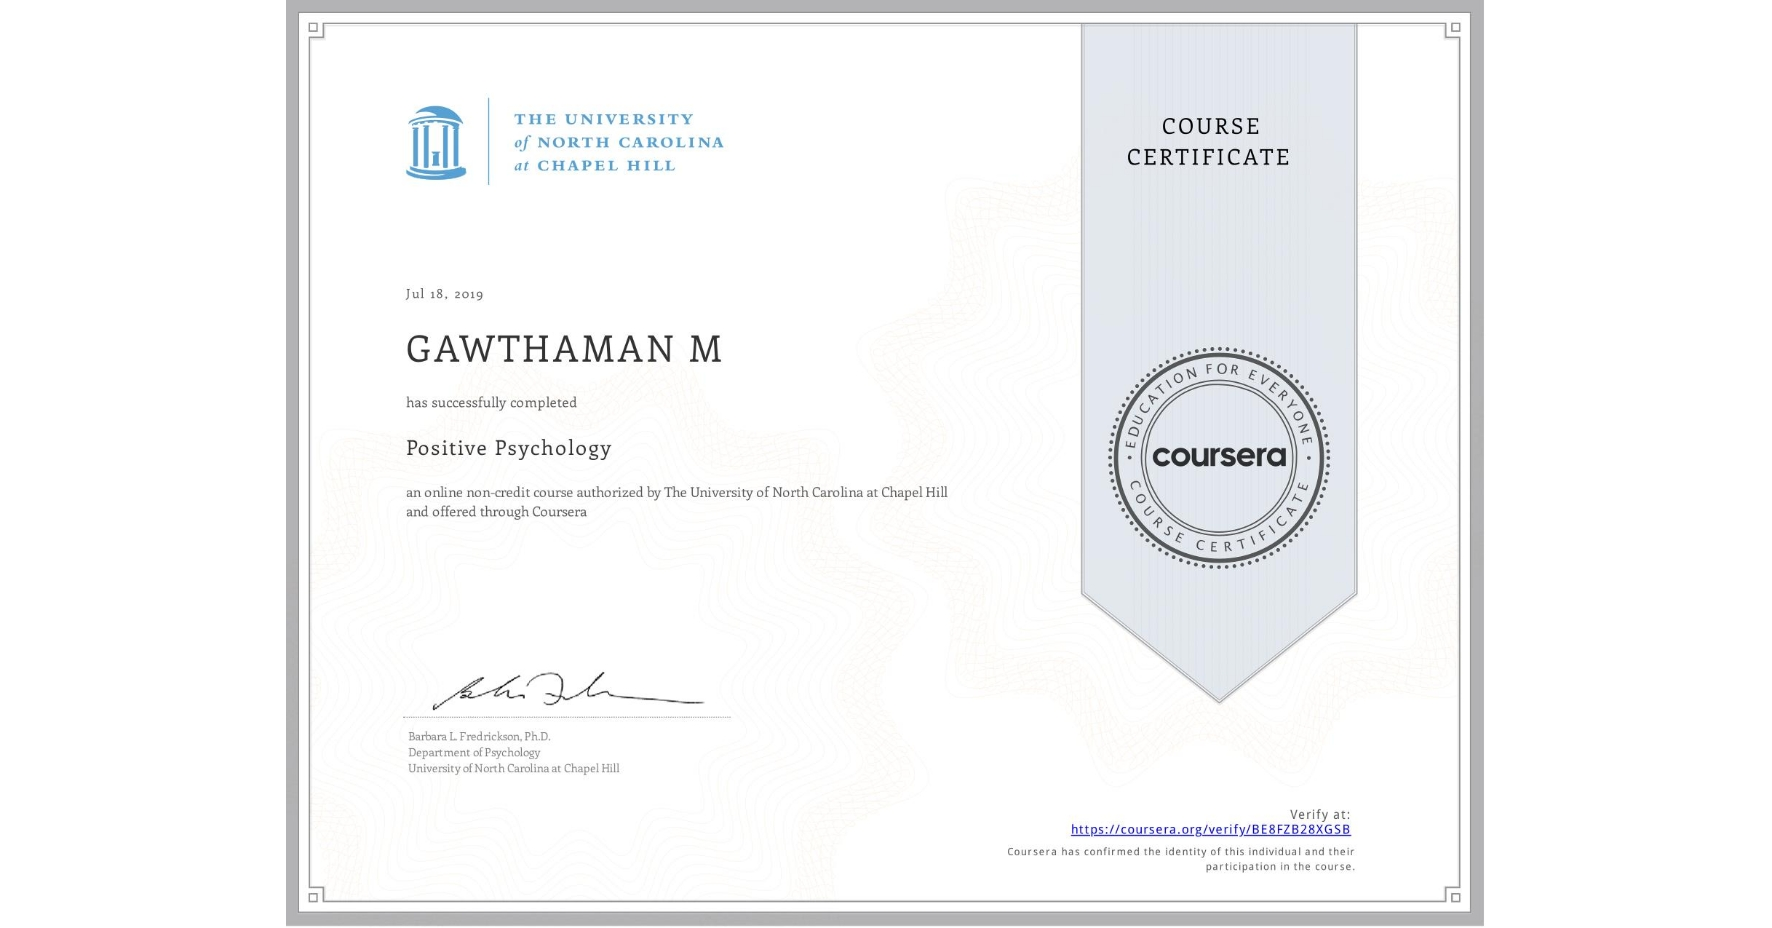 View certificate for GAWTHAMAN M, Positive Psychology , an online non-credit course authorized by The University of North Carolina at Chapel Hill and offered through Coursera